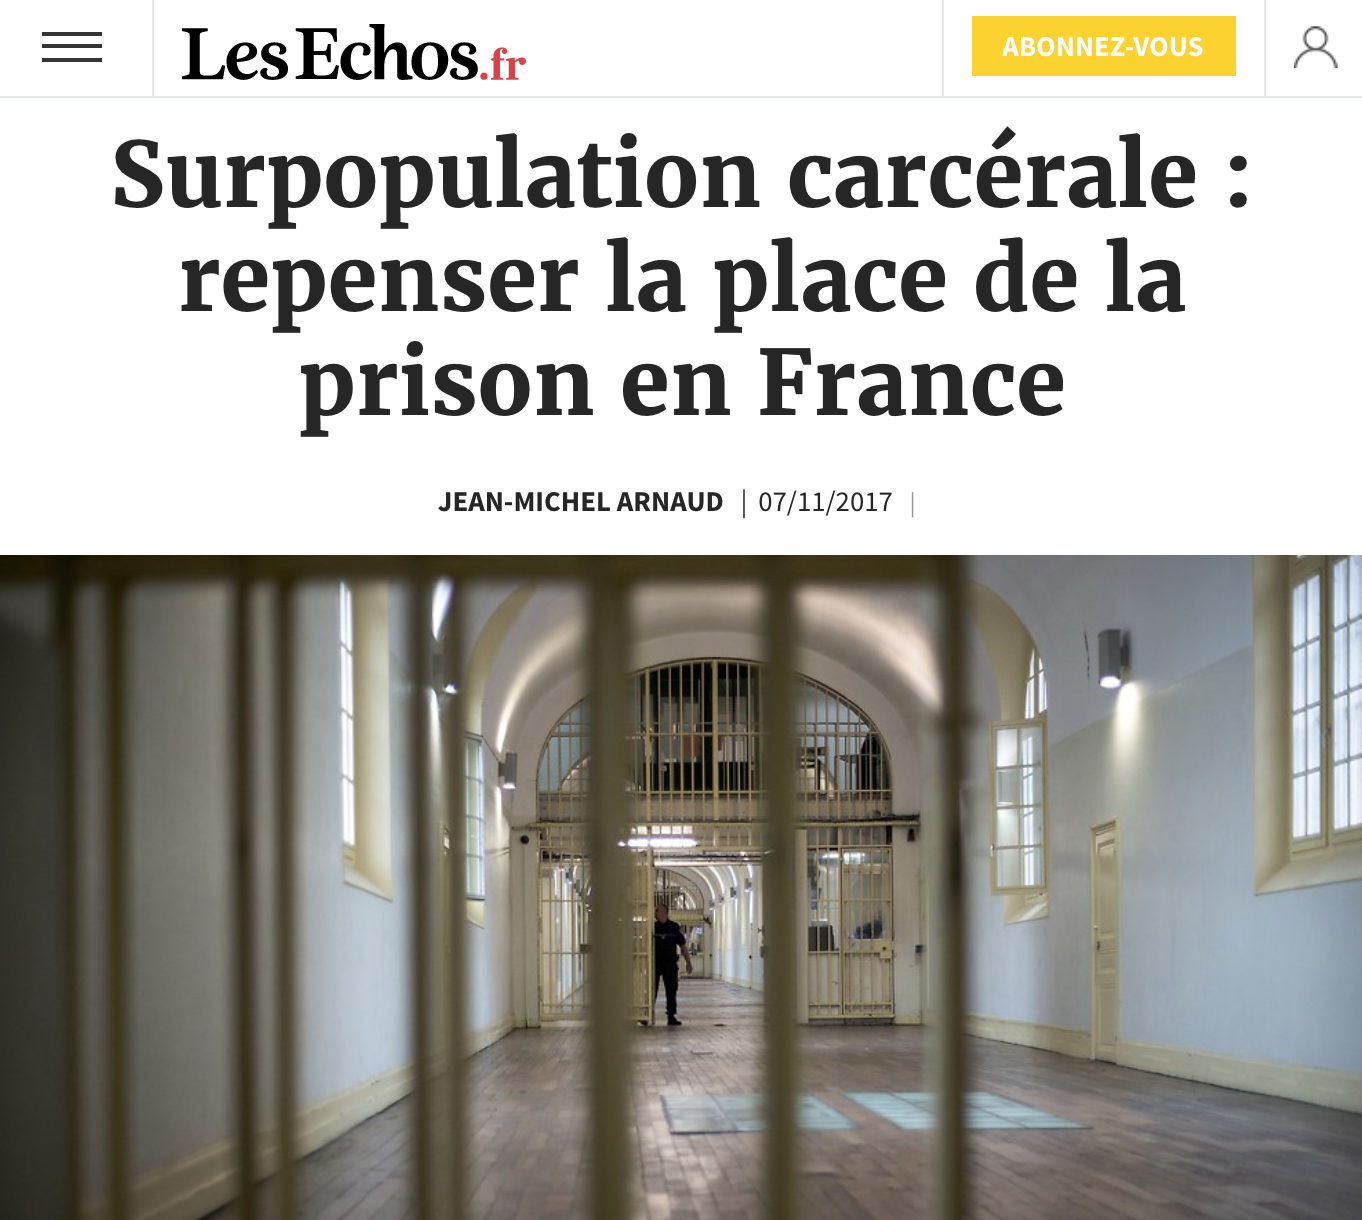 Surpopulation carcérale : repenser la place de la prison en France